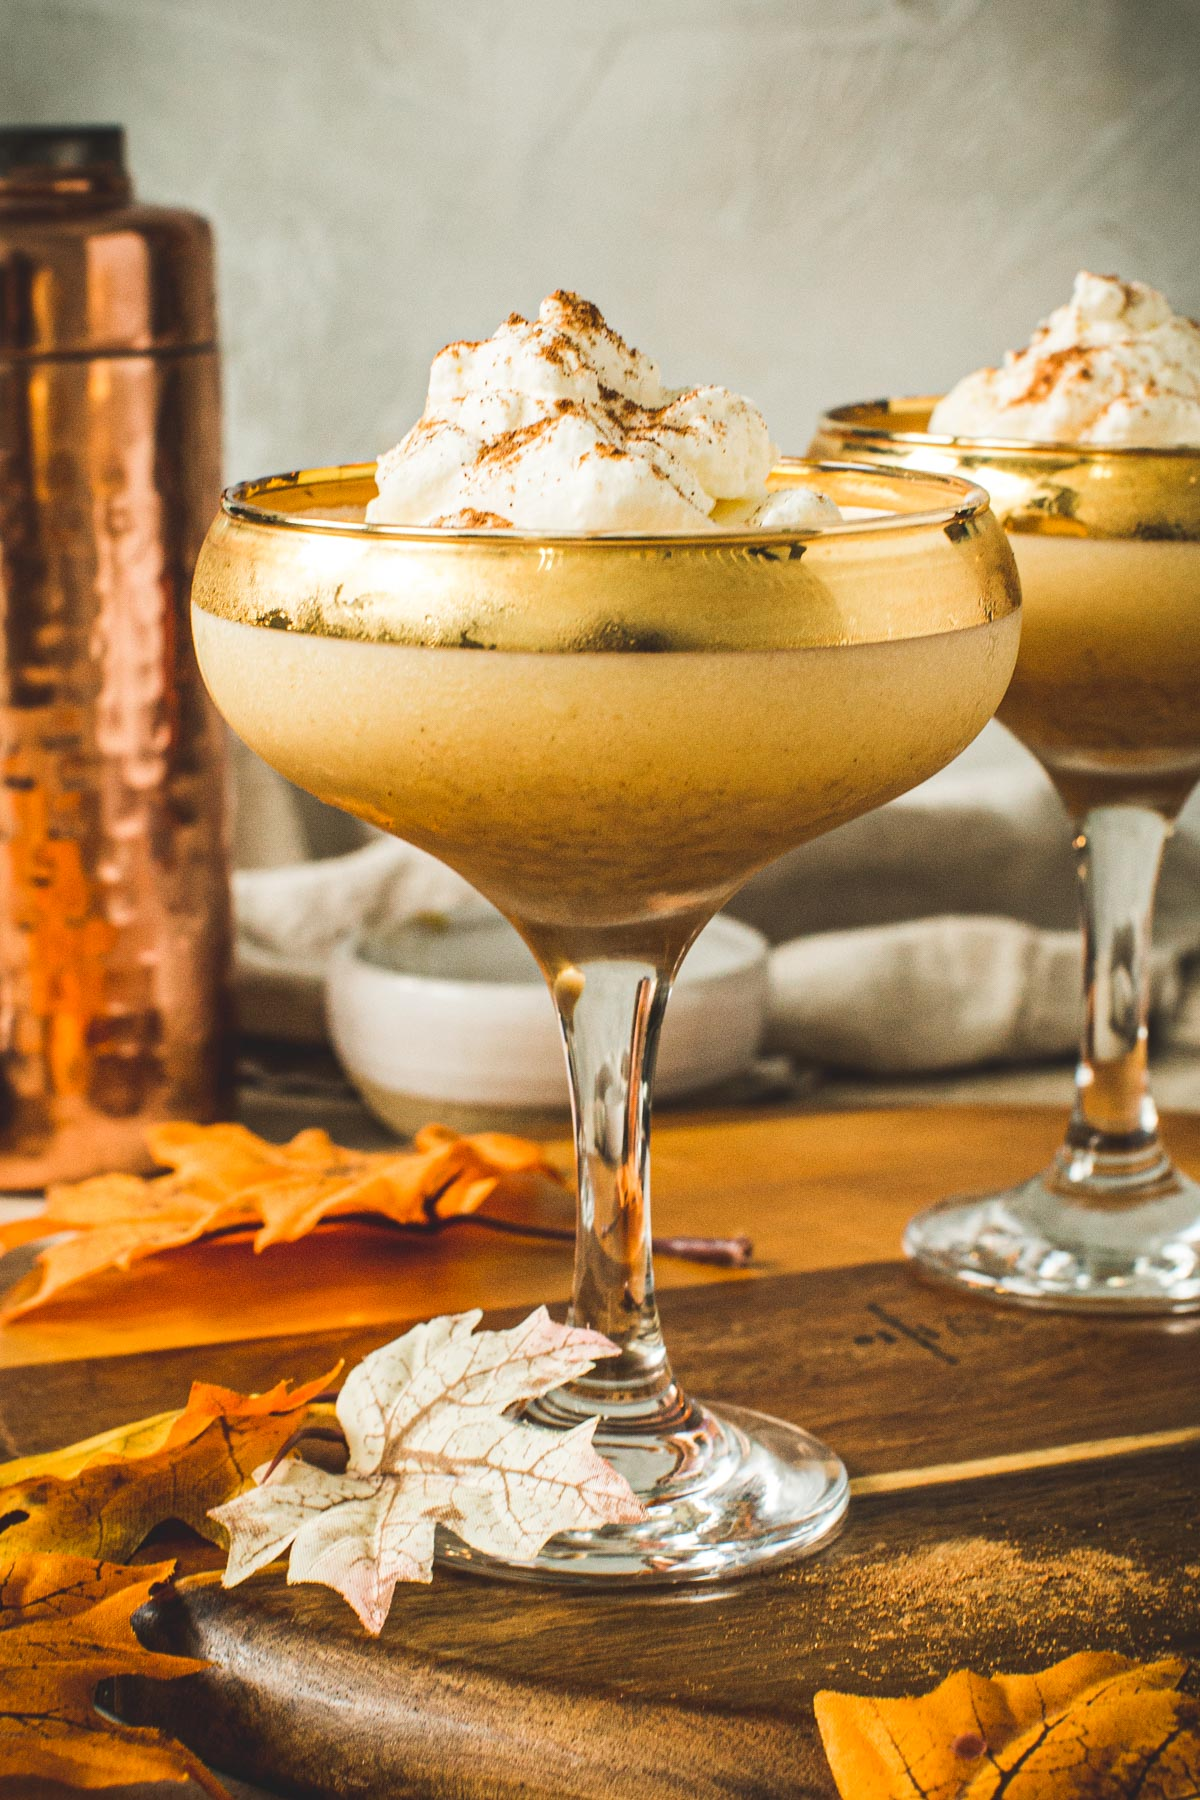 Pumpkin pie martini with whipped topping and cinnamon sprinkled on top in a martini glass.